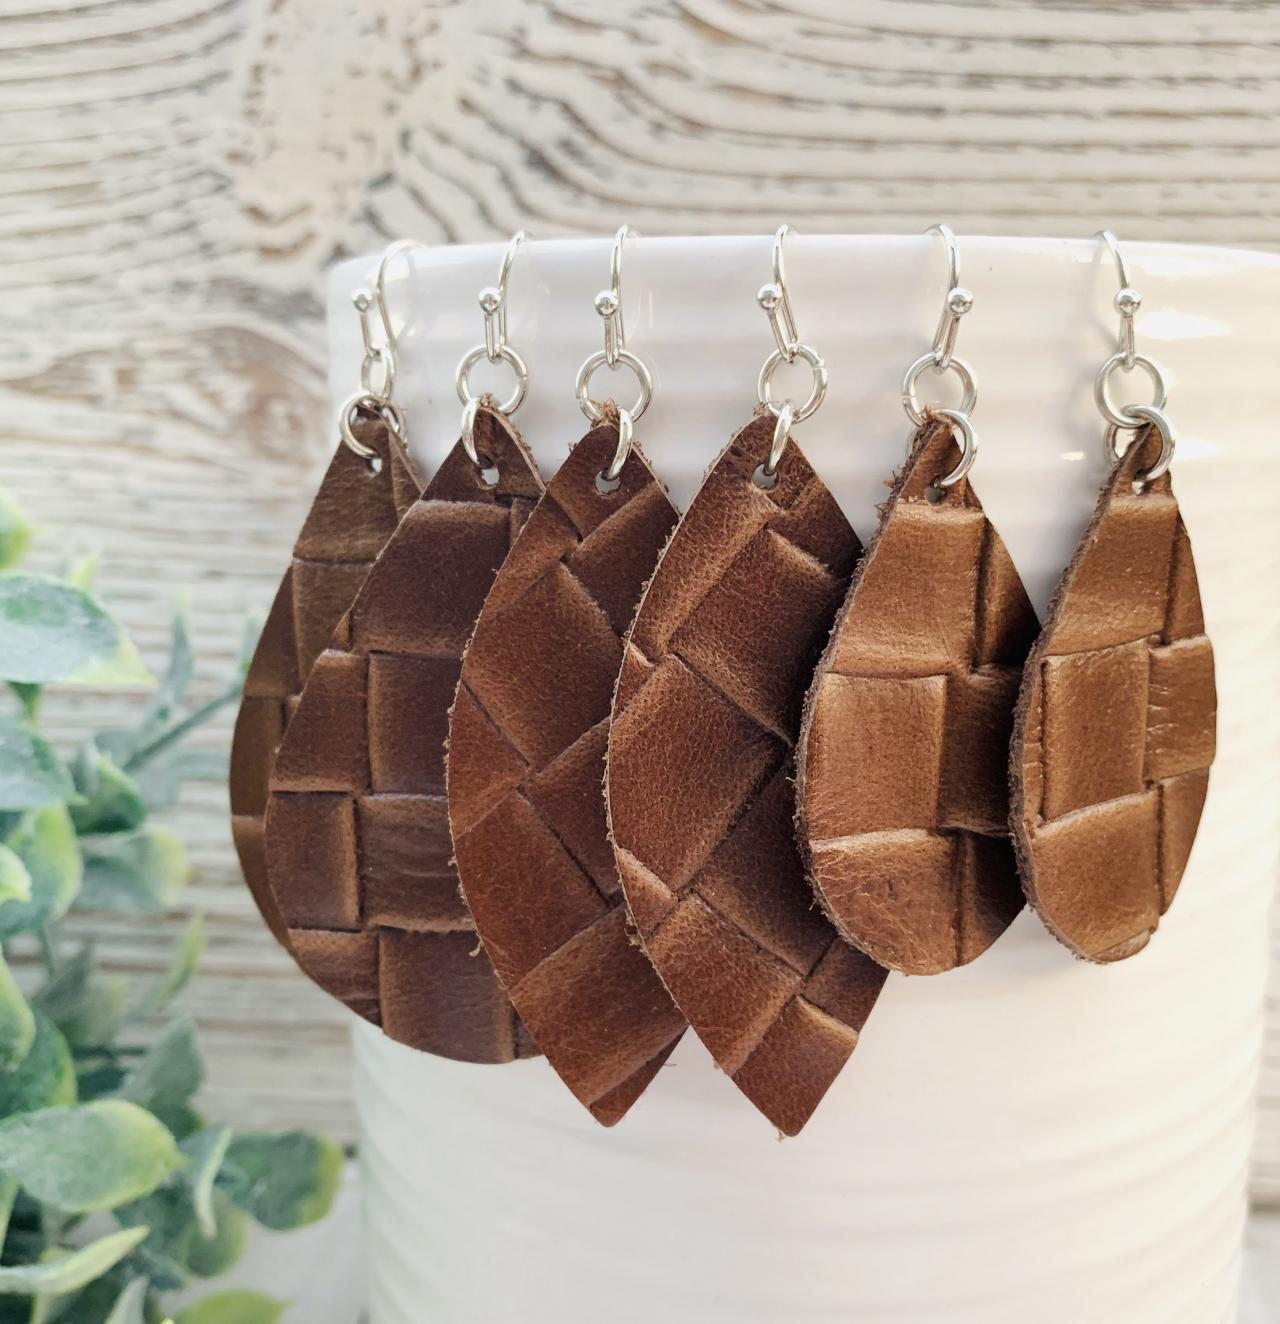 Brown Leather Earrings | Leather Earrings Teardrop |Teardrop Leather Earrings | Genuine Leather